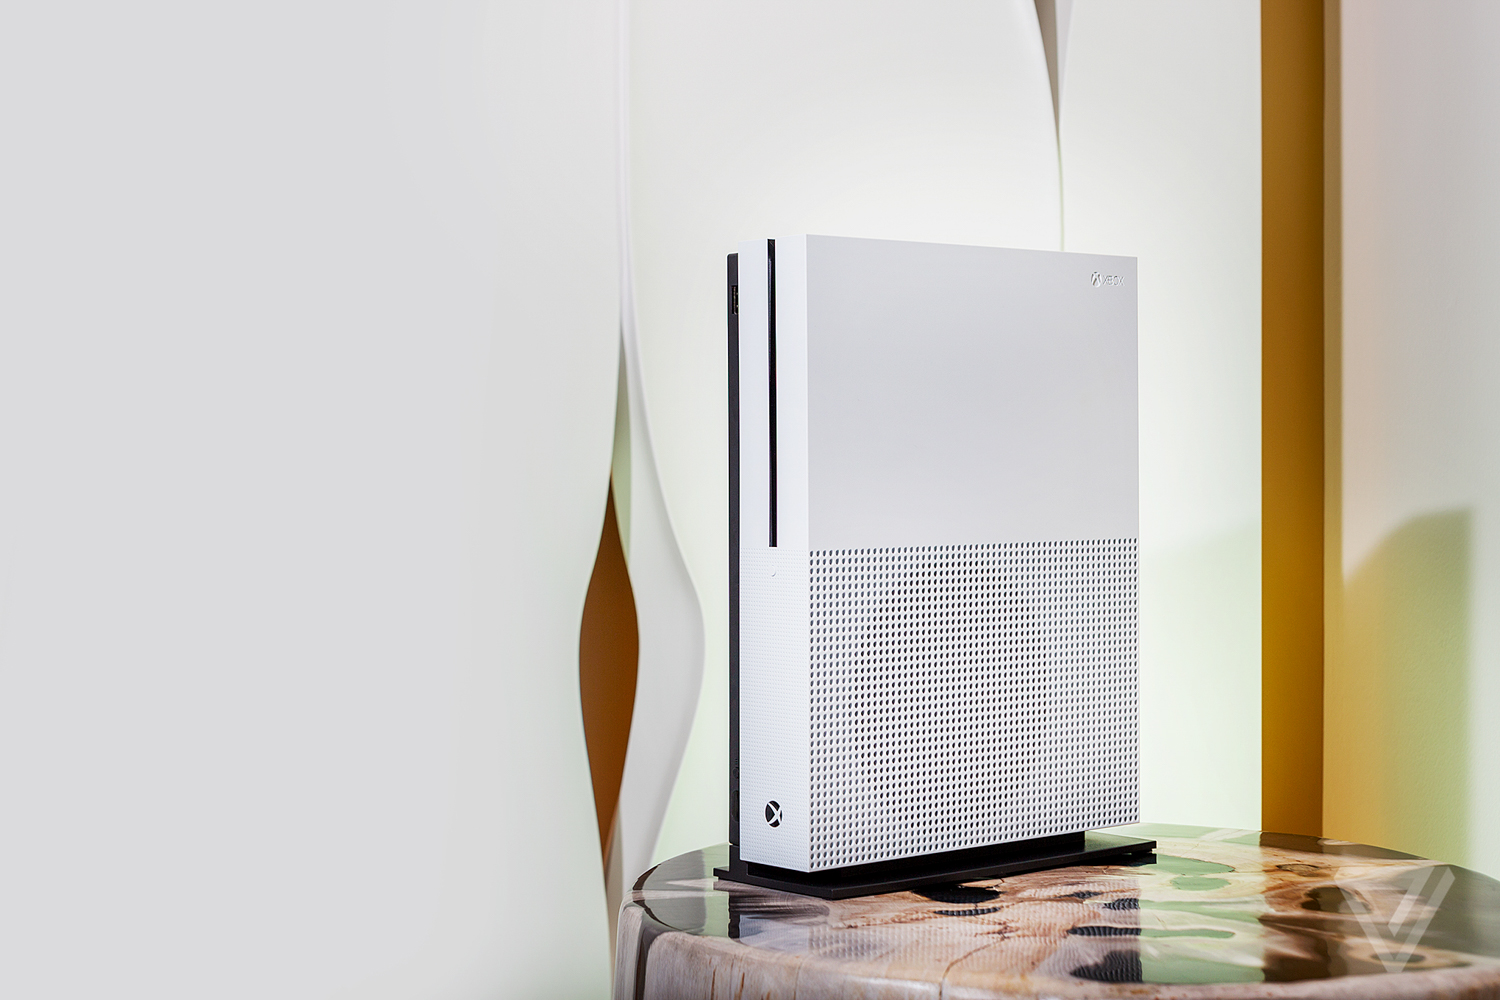 Microsoft Announces The Xbox One S Its Smallest Xbox Yet